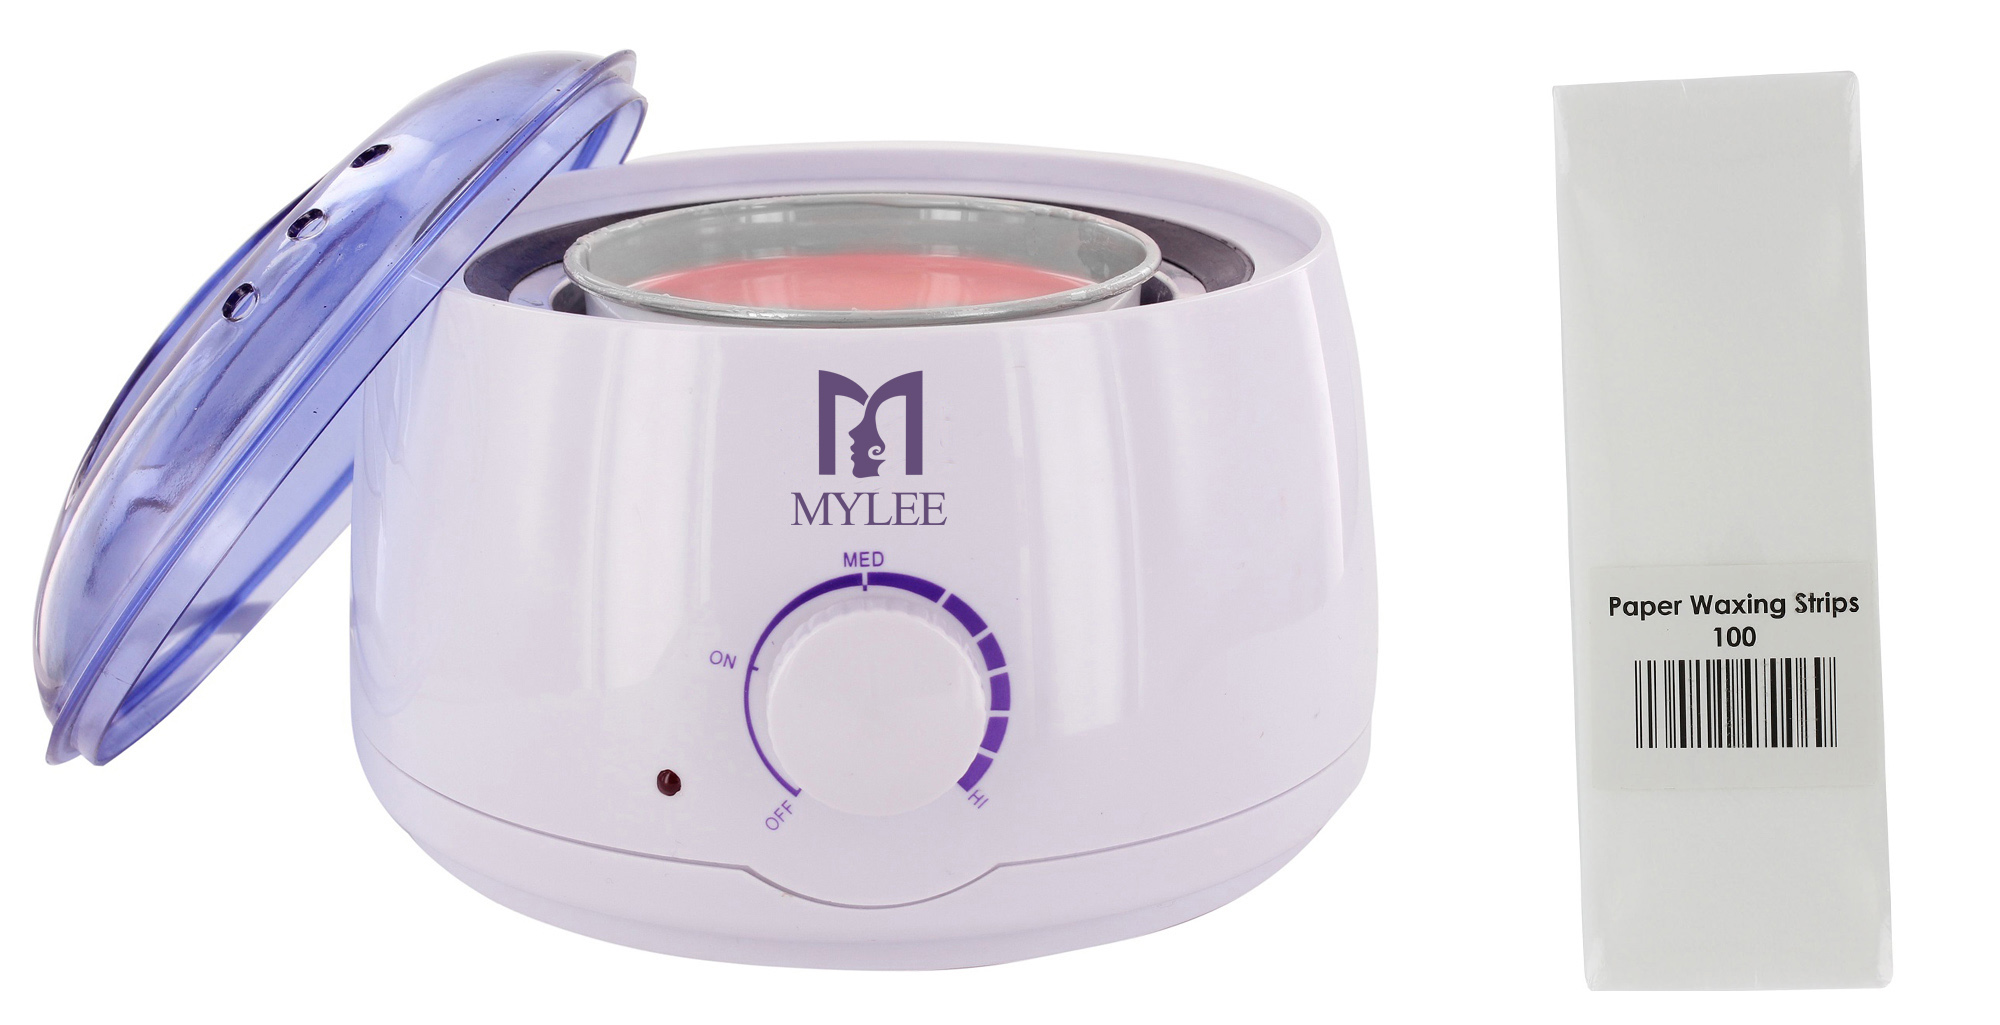 New Mylee Wax Heater Warmer For Depilatory Hair Removal